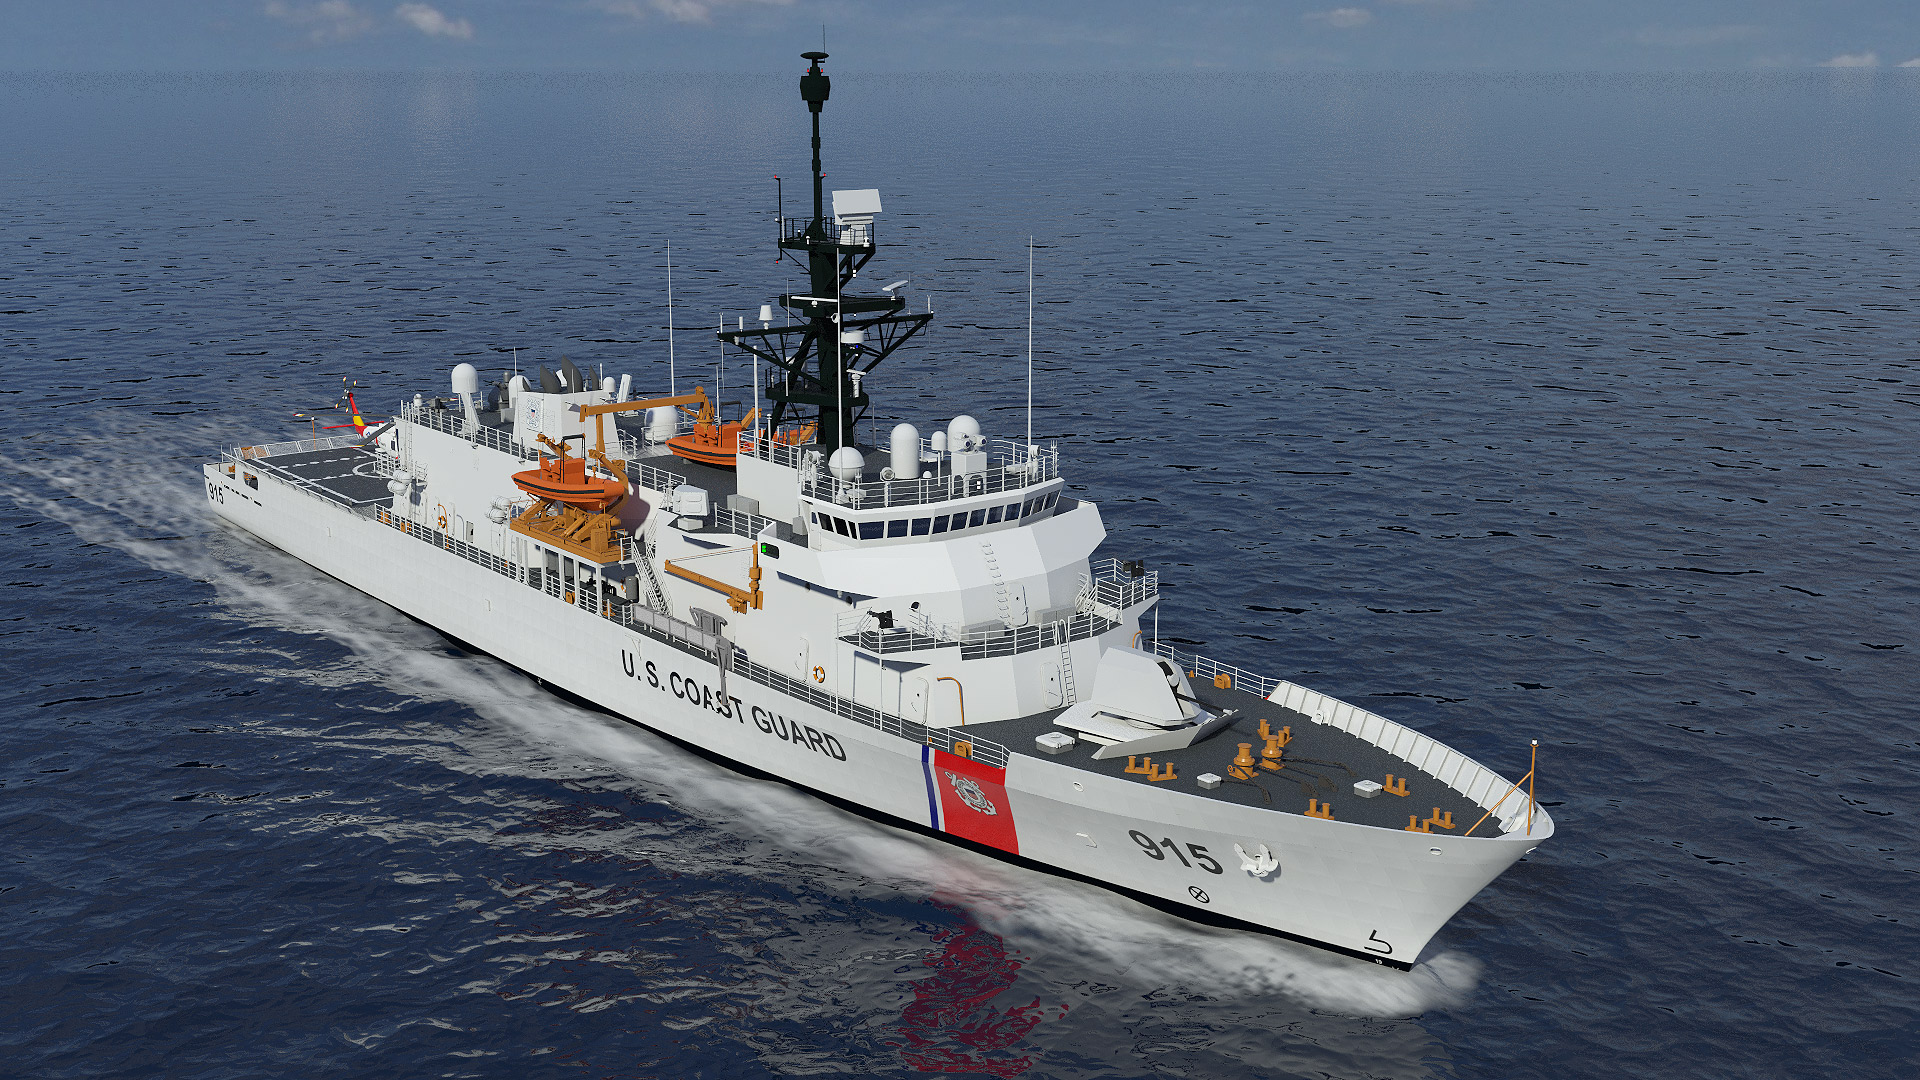 Offshore Patrol Cutter VARD 7 110 Canadian Coast Guard rendering in perspective starboard view